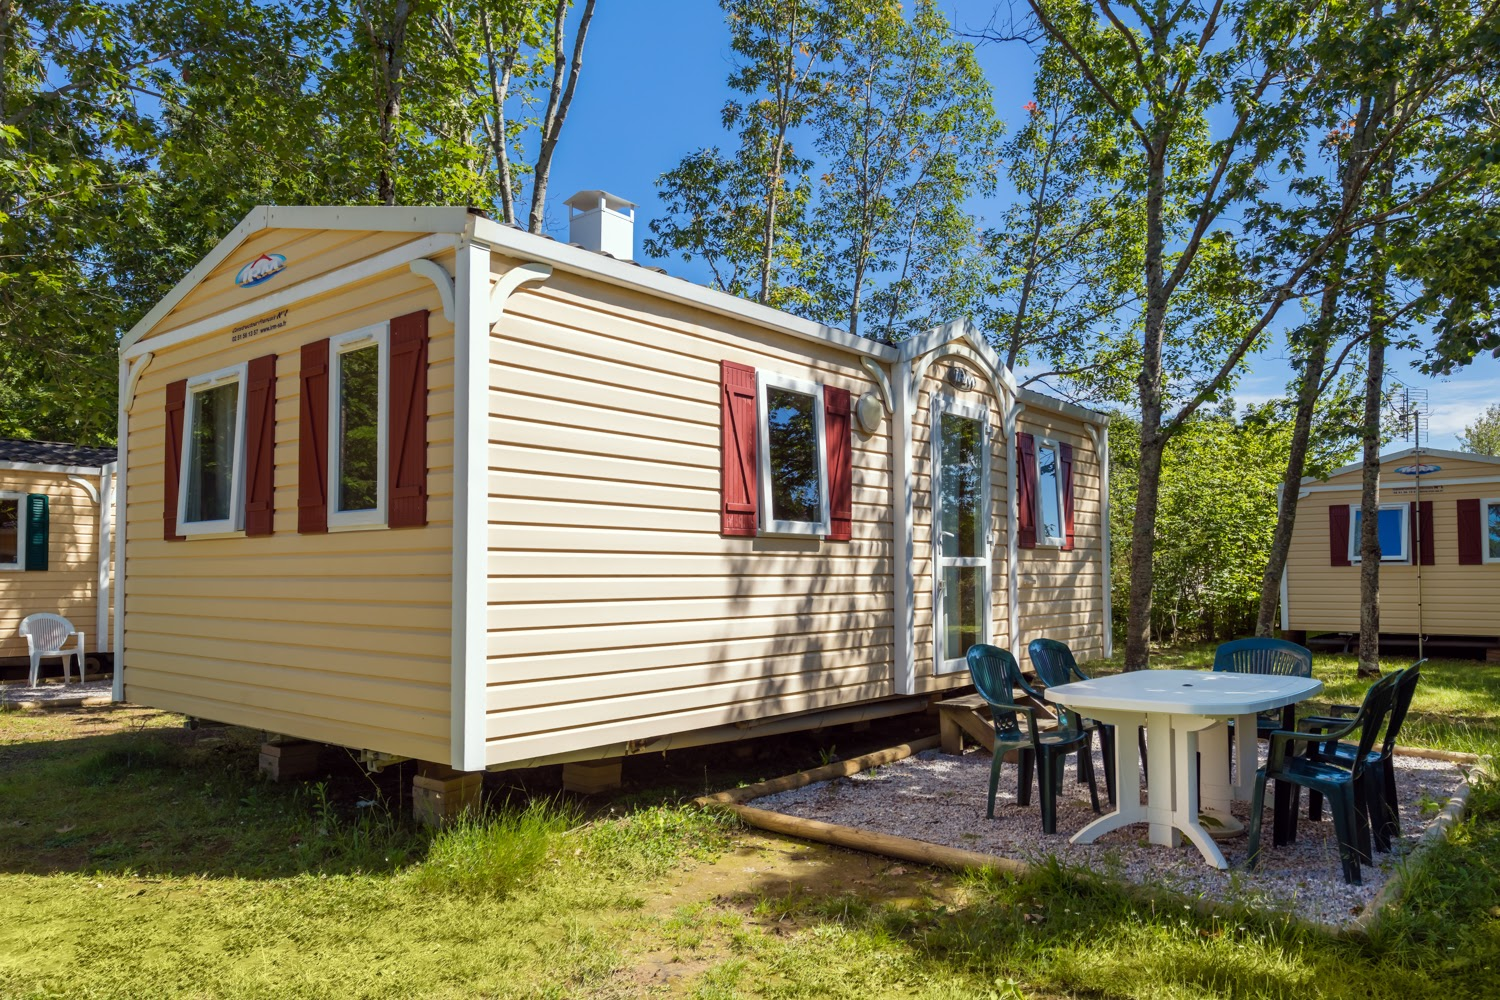 2019 RENOVATION DE NOS MOBILHOMES